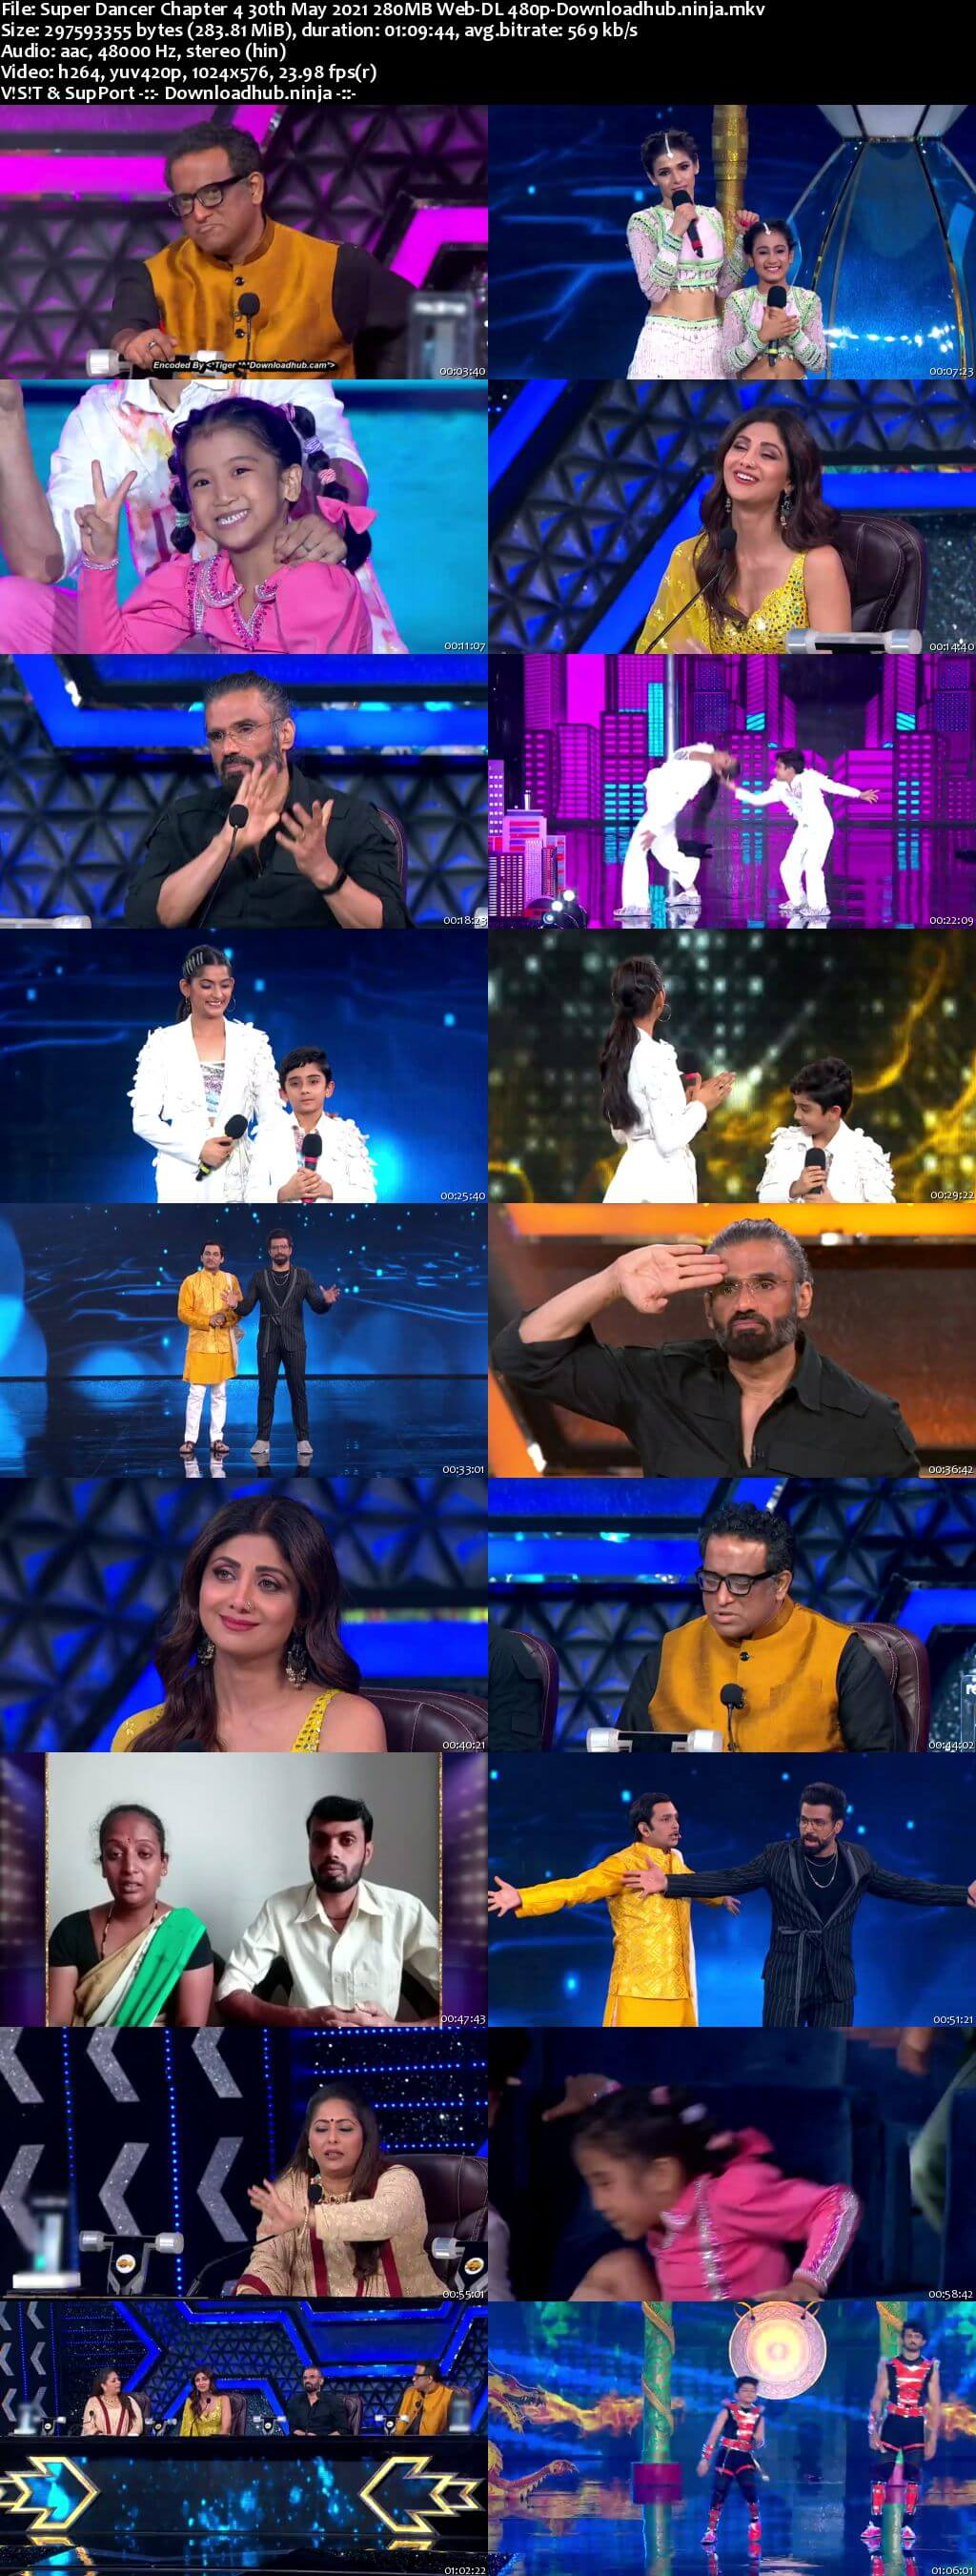 Super Dancer Chapter 4 30th May 2021 280MB Web-DL 480p